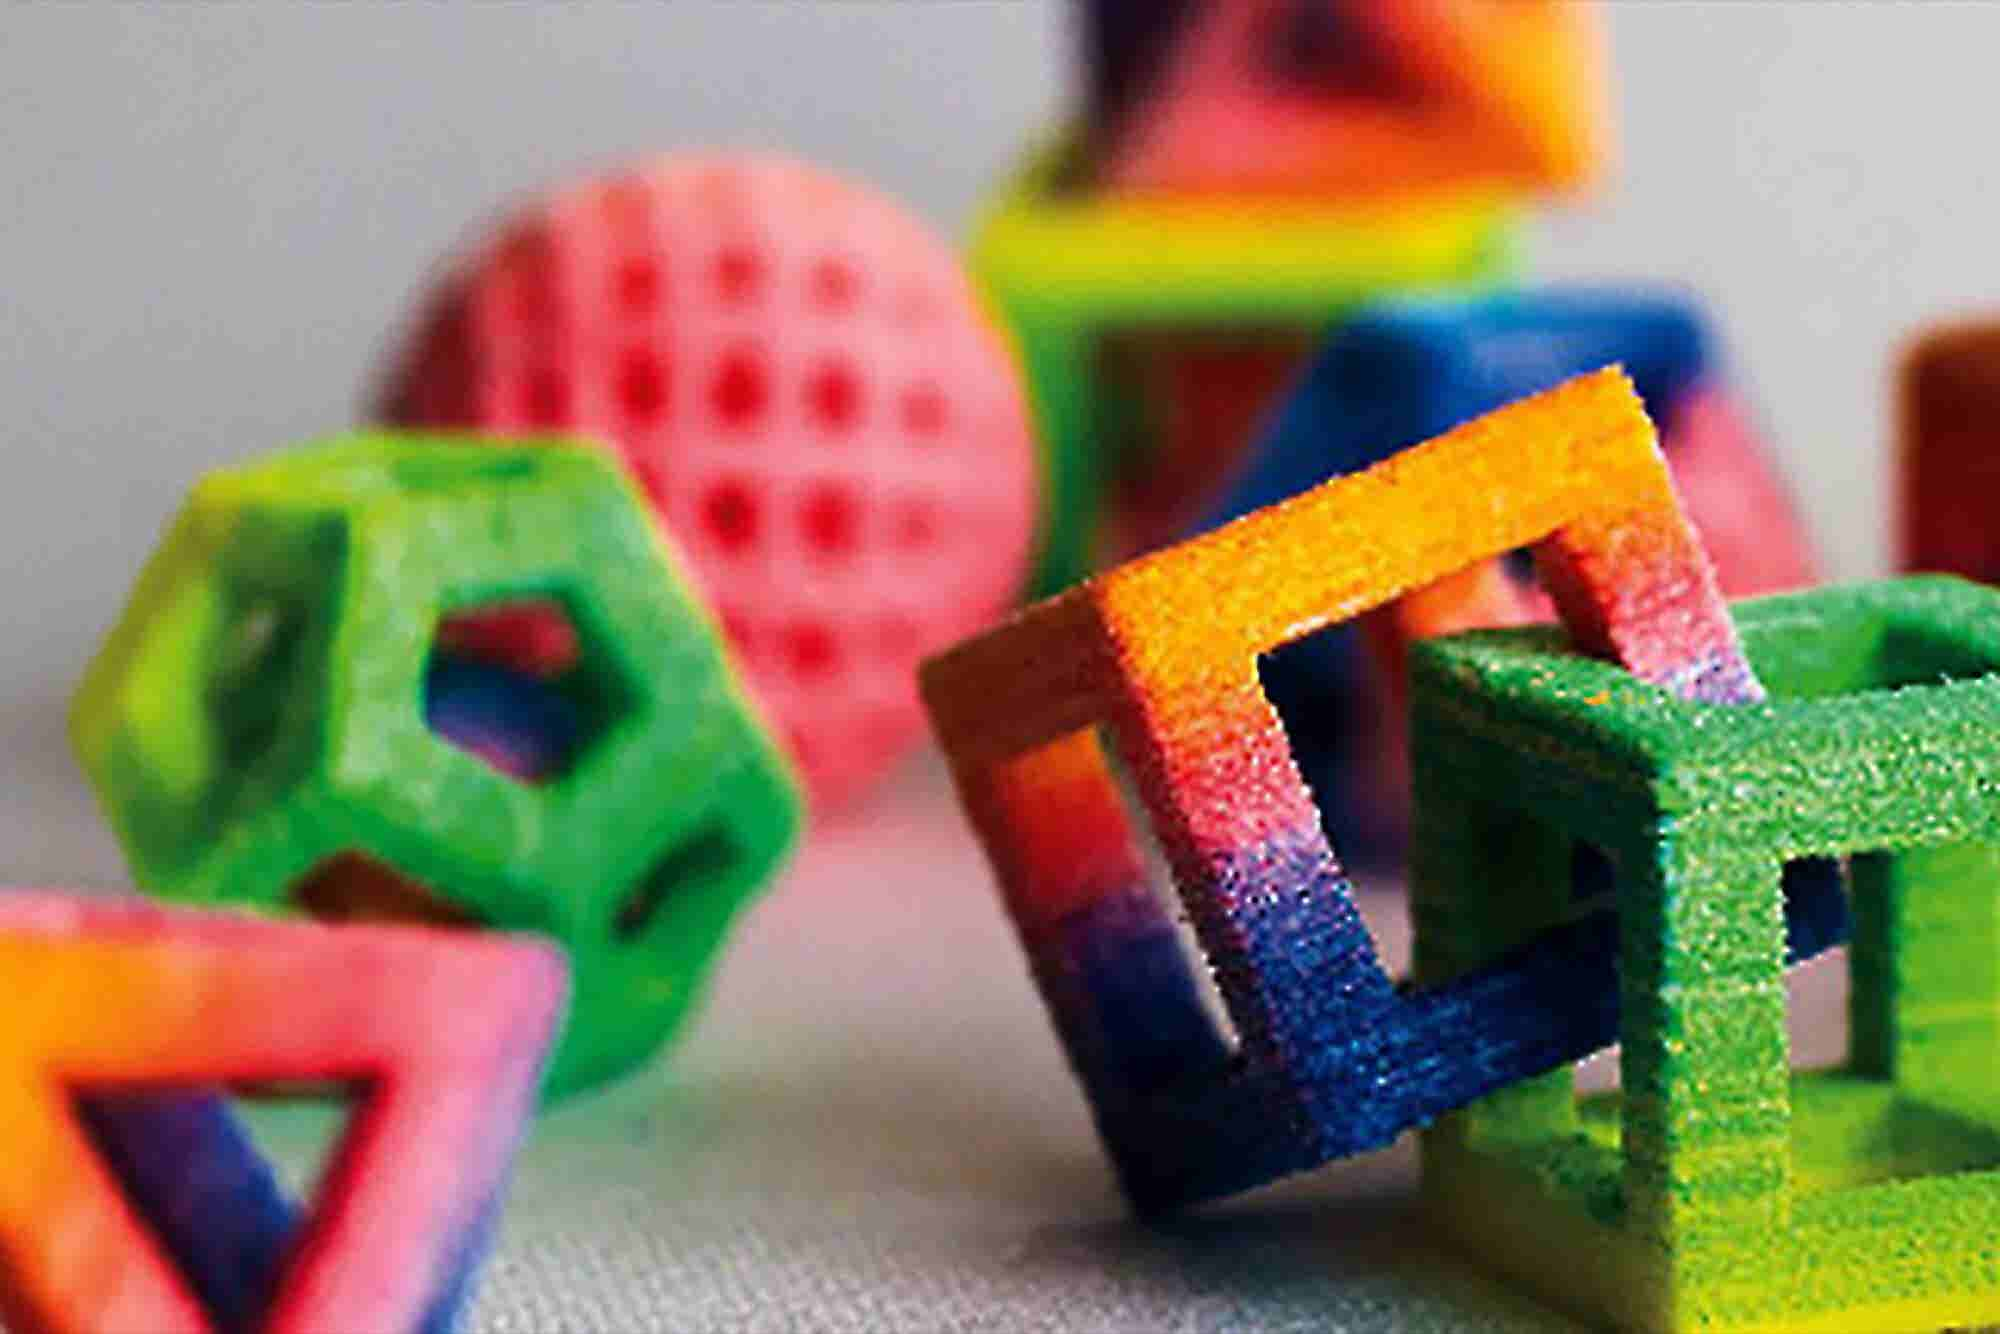 From the Sustainable to the Flexible to the Edible, We Explore the Possibilities of 3-D Printing